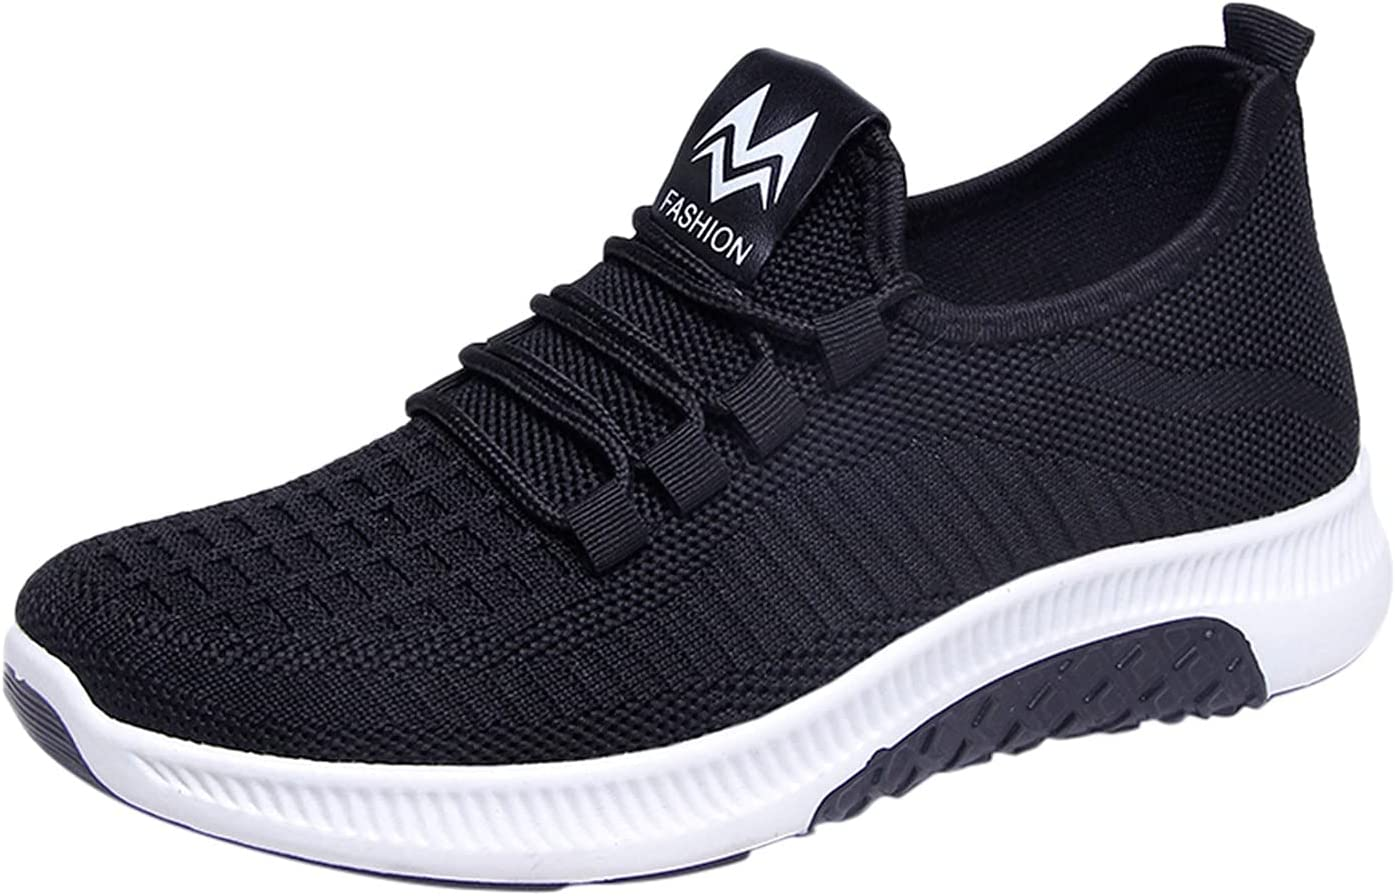 LODDD Women's Fashion Weekly update Mesh Sports Shoes Lightweight Daily bargain sale Comfortable